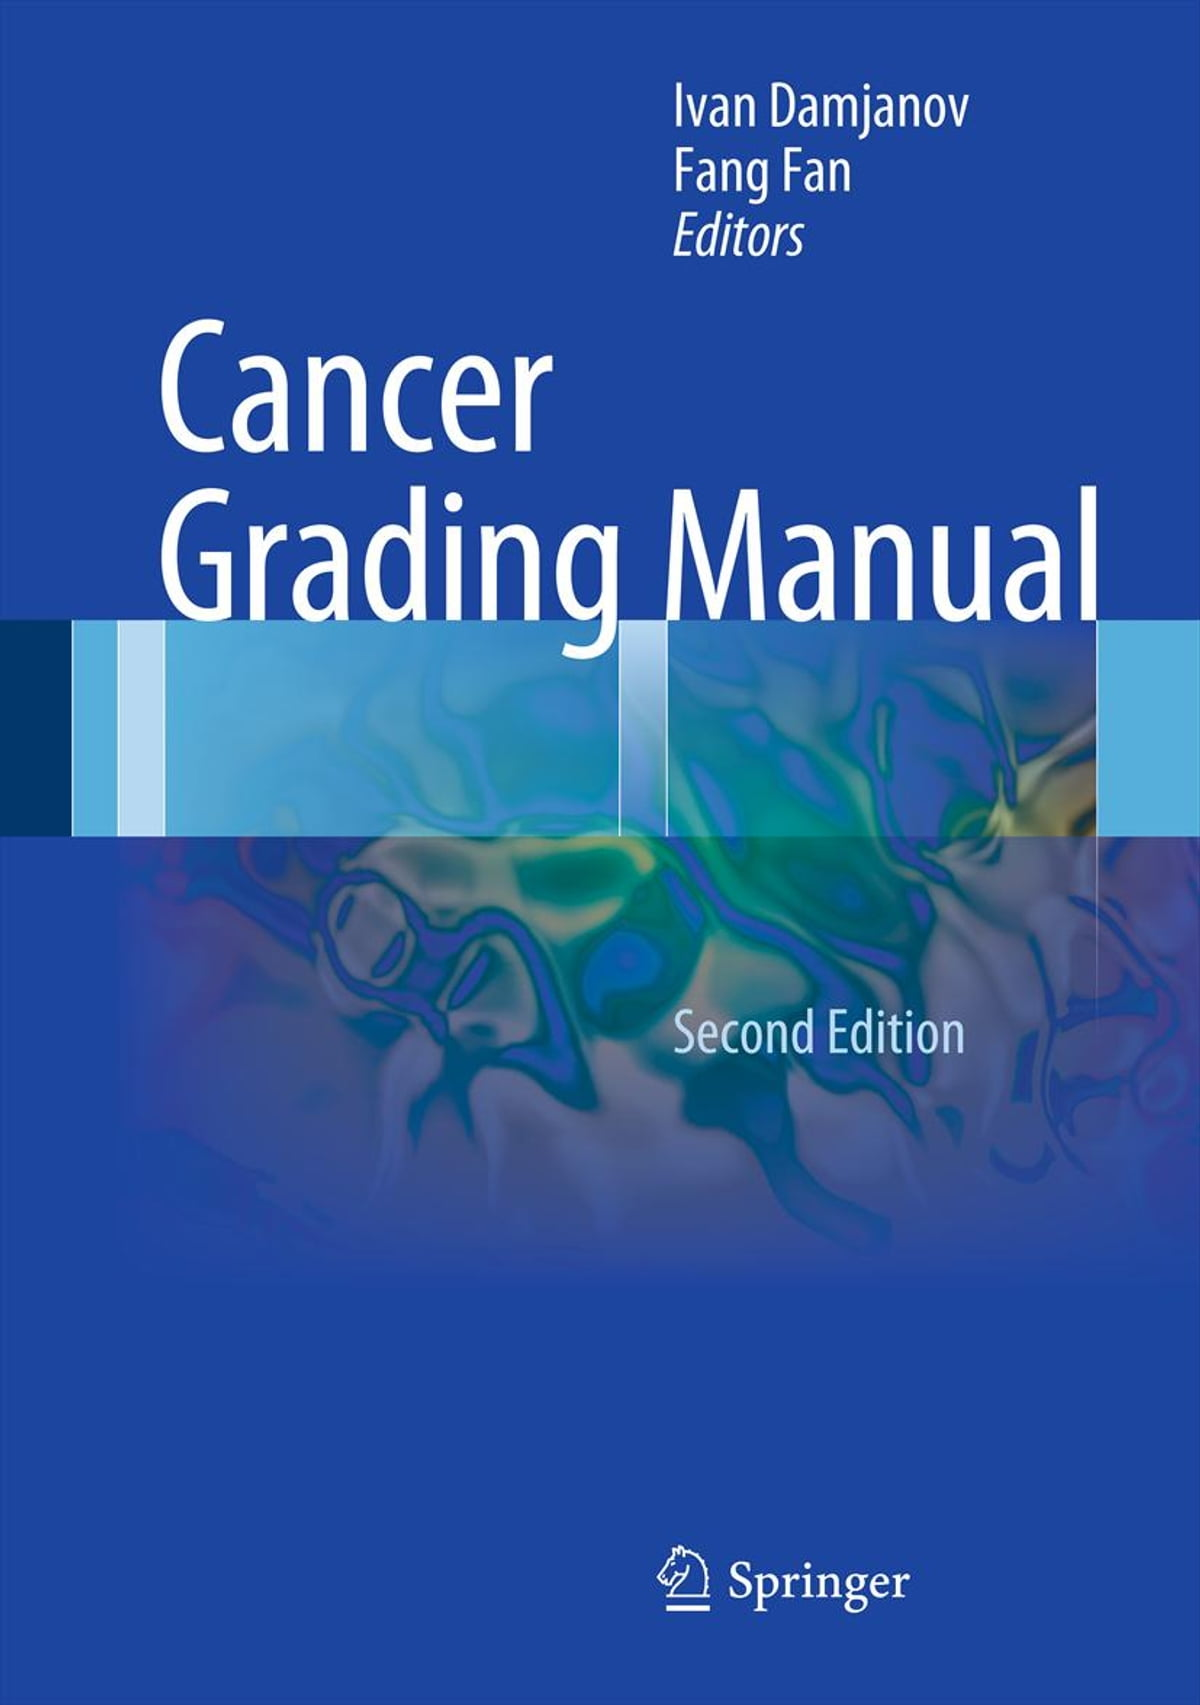 Cancer grading manual enea brivio.